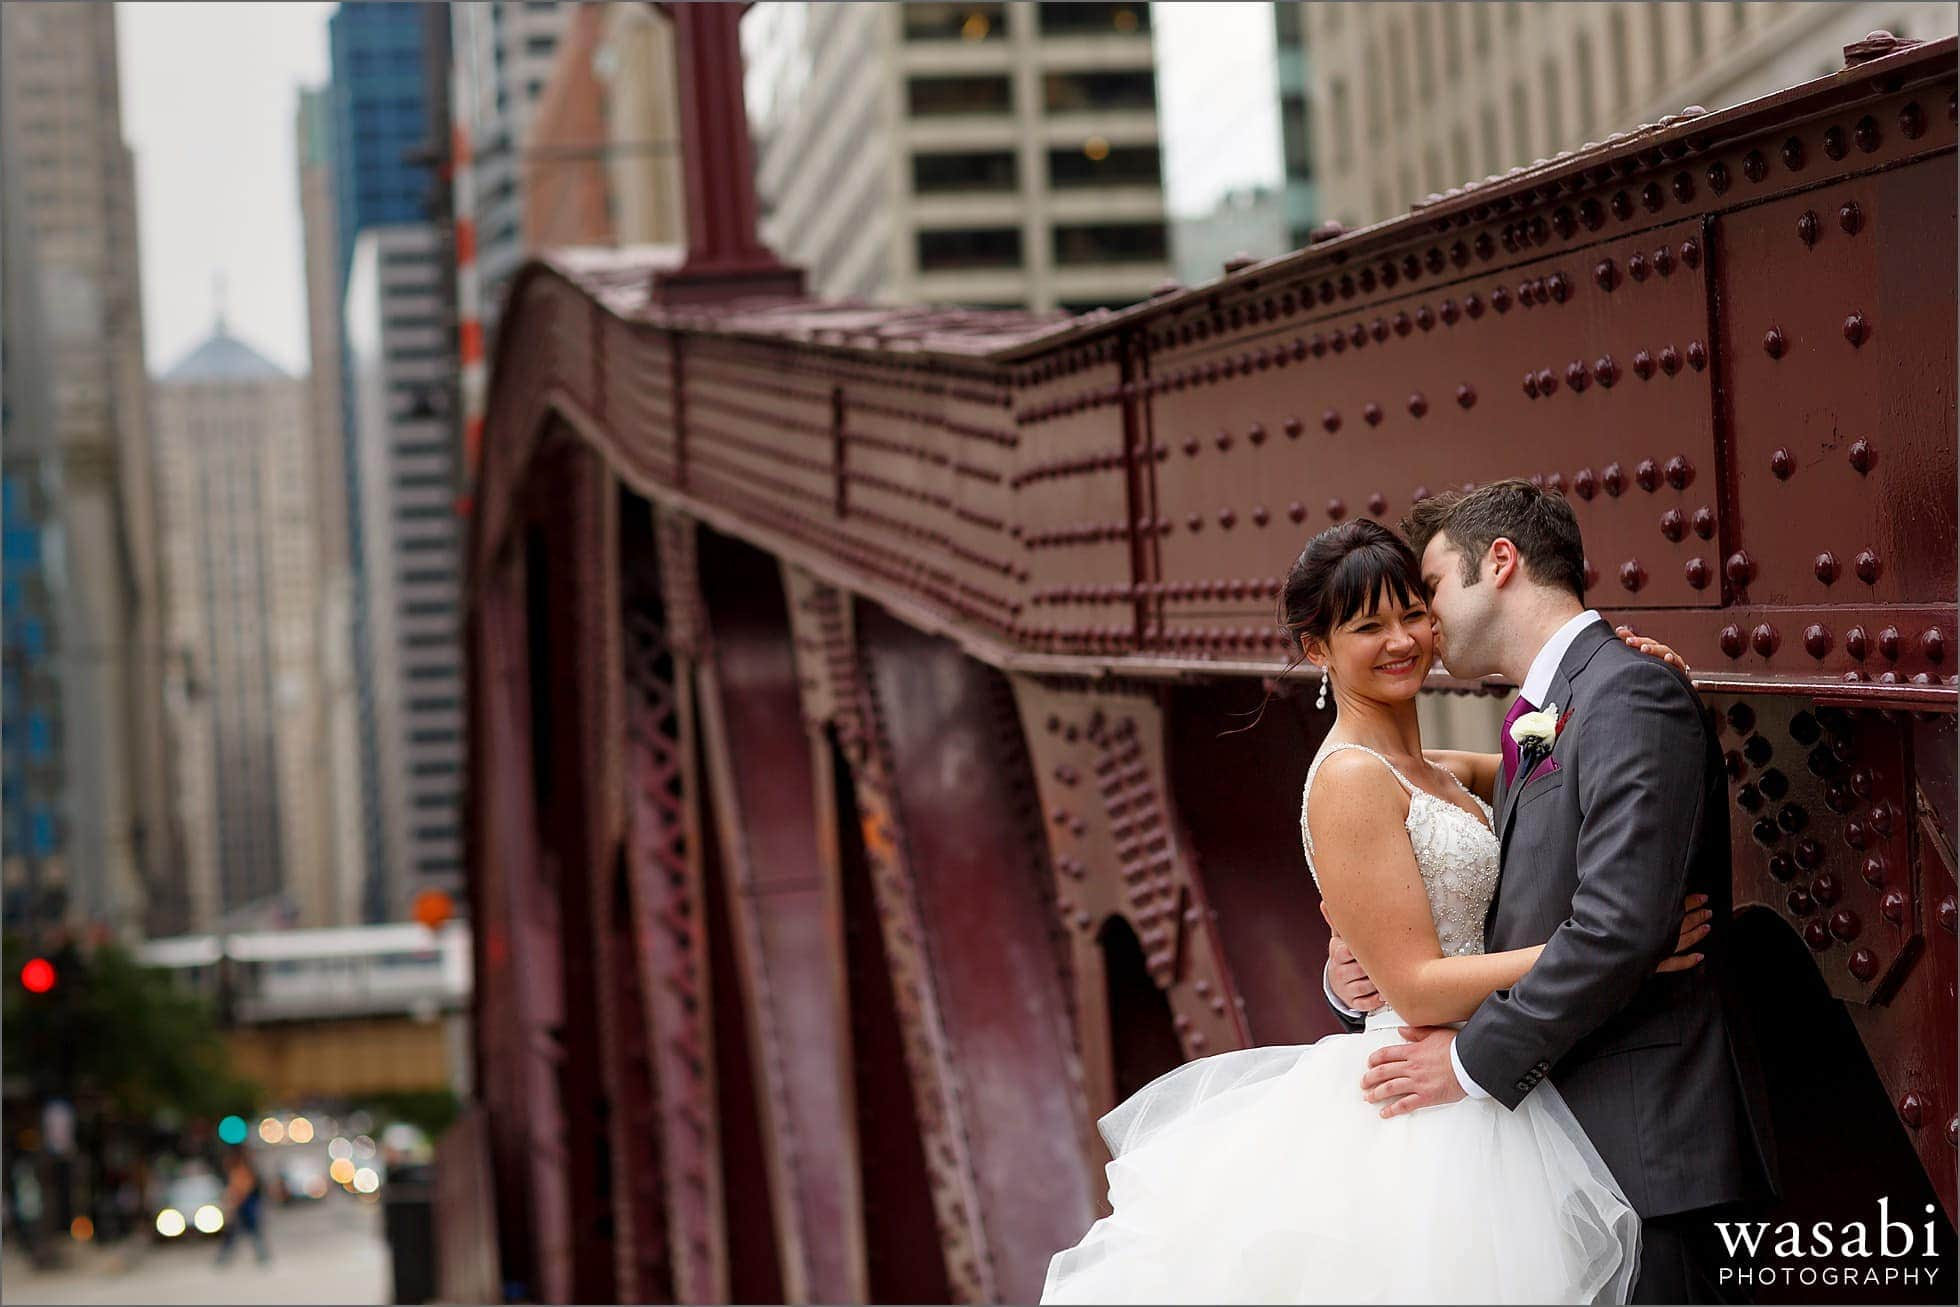 groom kisses bride on the cheek for wedding photo on LaSalle Street Bridge